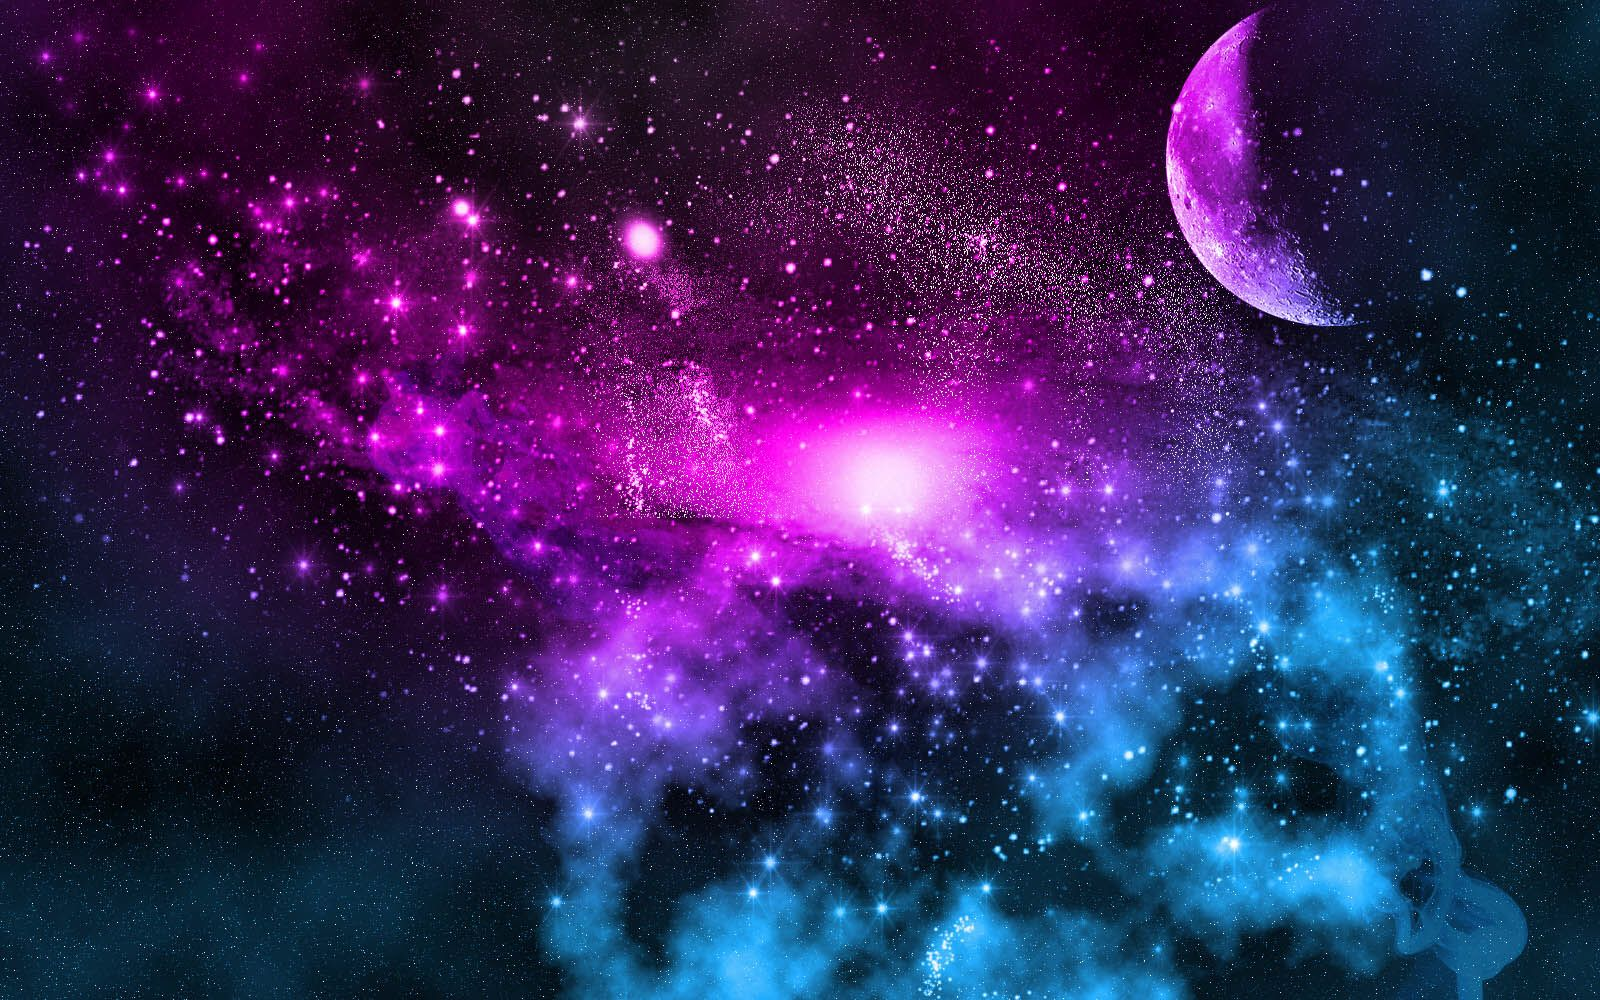 Space Bedroom Wallpaper Moon In Space With Galaxy Wallpapers Pinterest Galaxies And